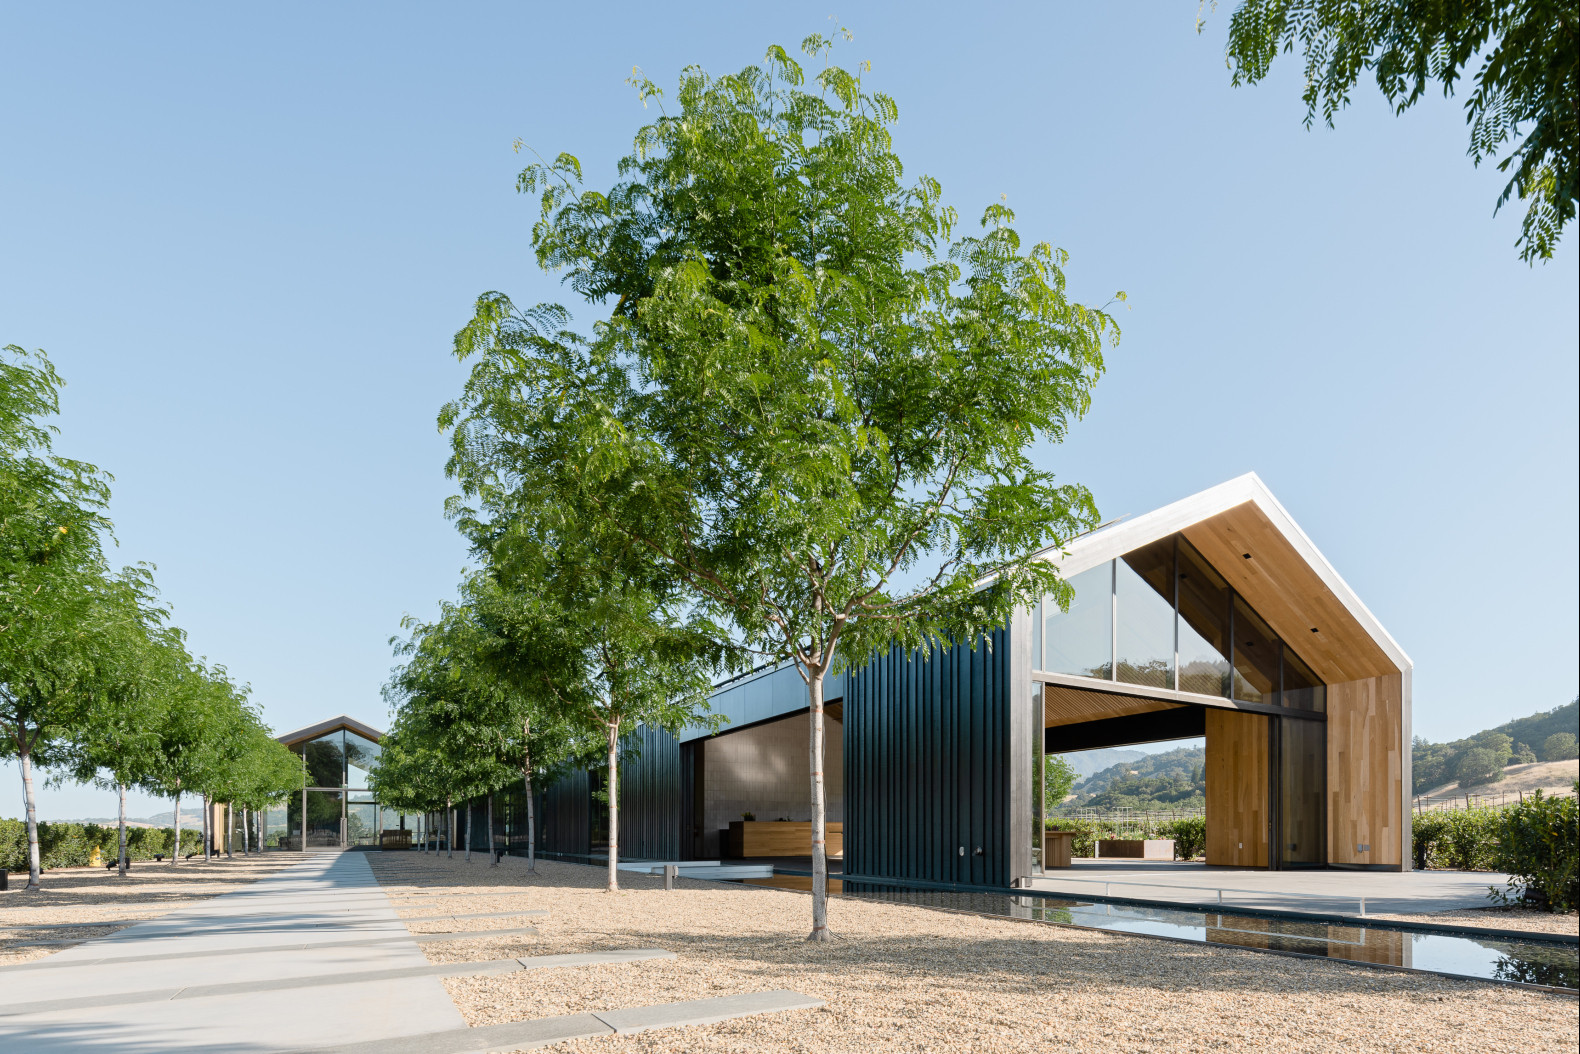 This gorgeous LEED Platinum winery is made of reclaimed wood